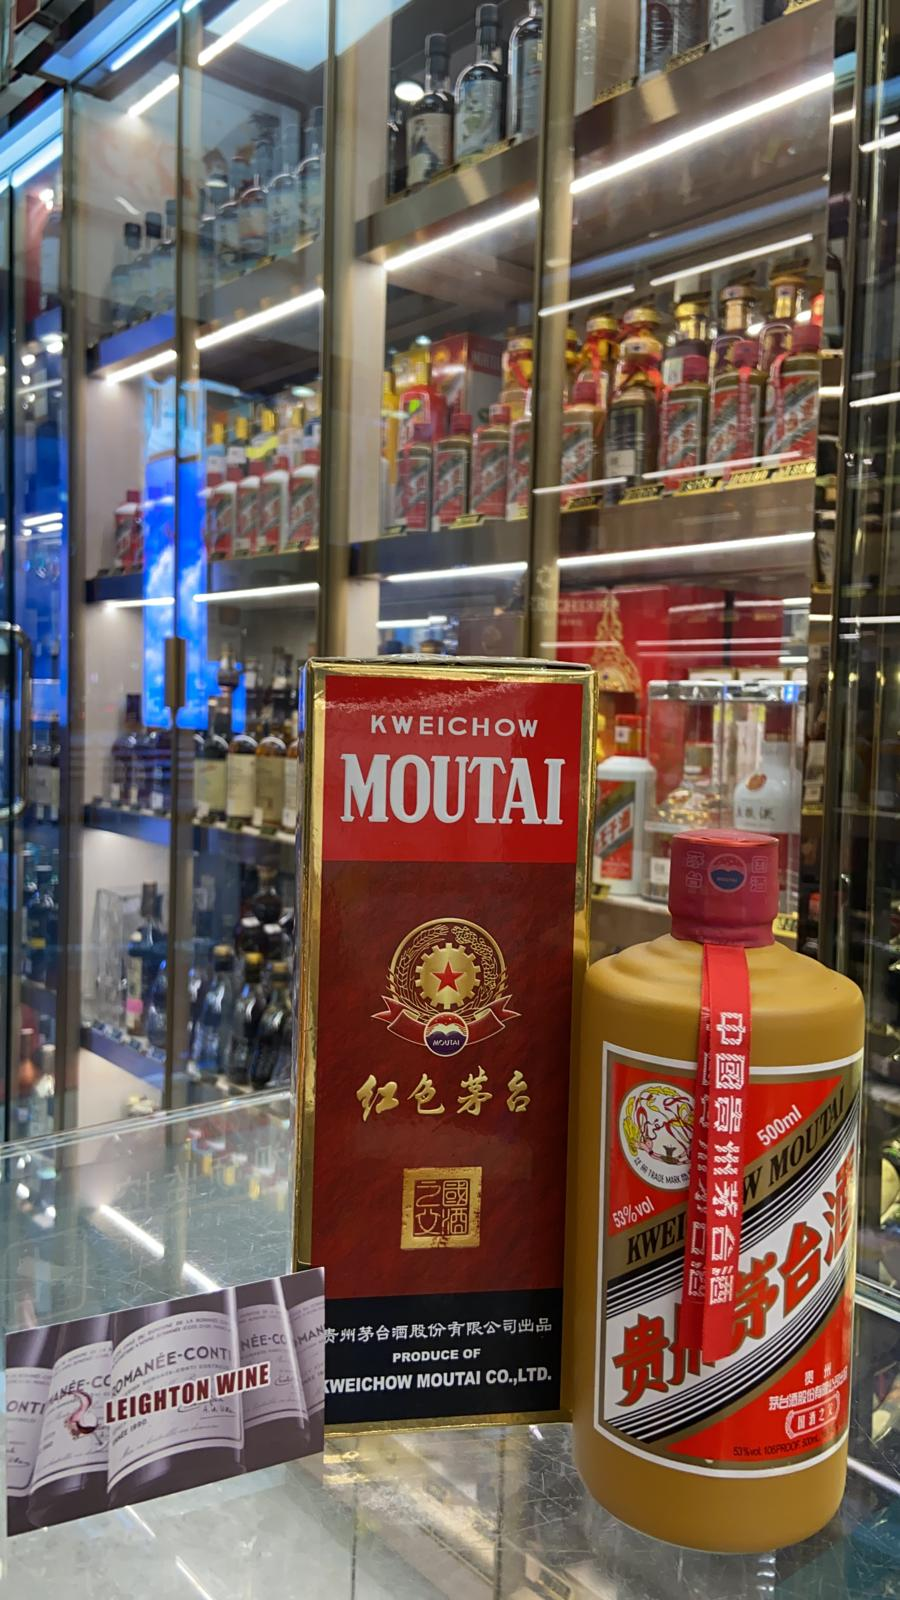 Kweichow Moutai Flying Fairy 2016 53% 500ml (Red Colour Edition)